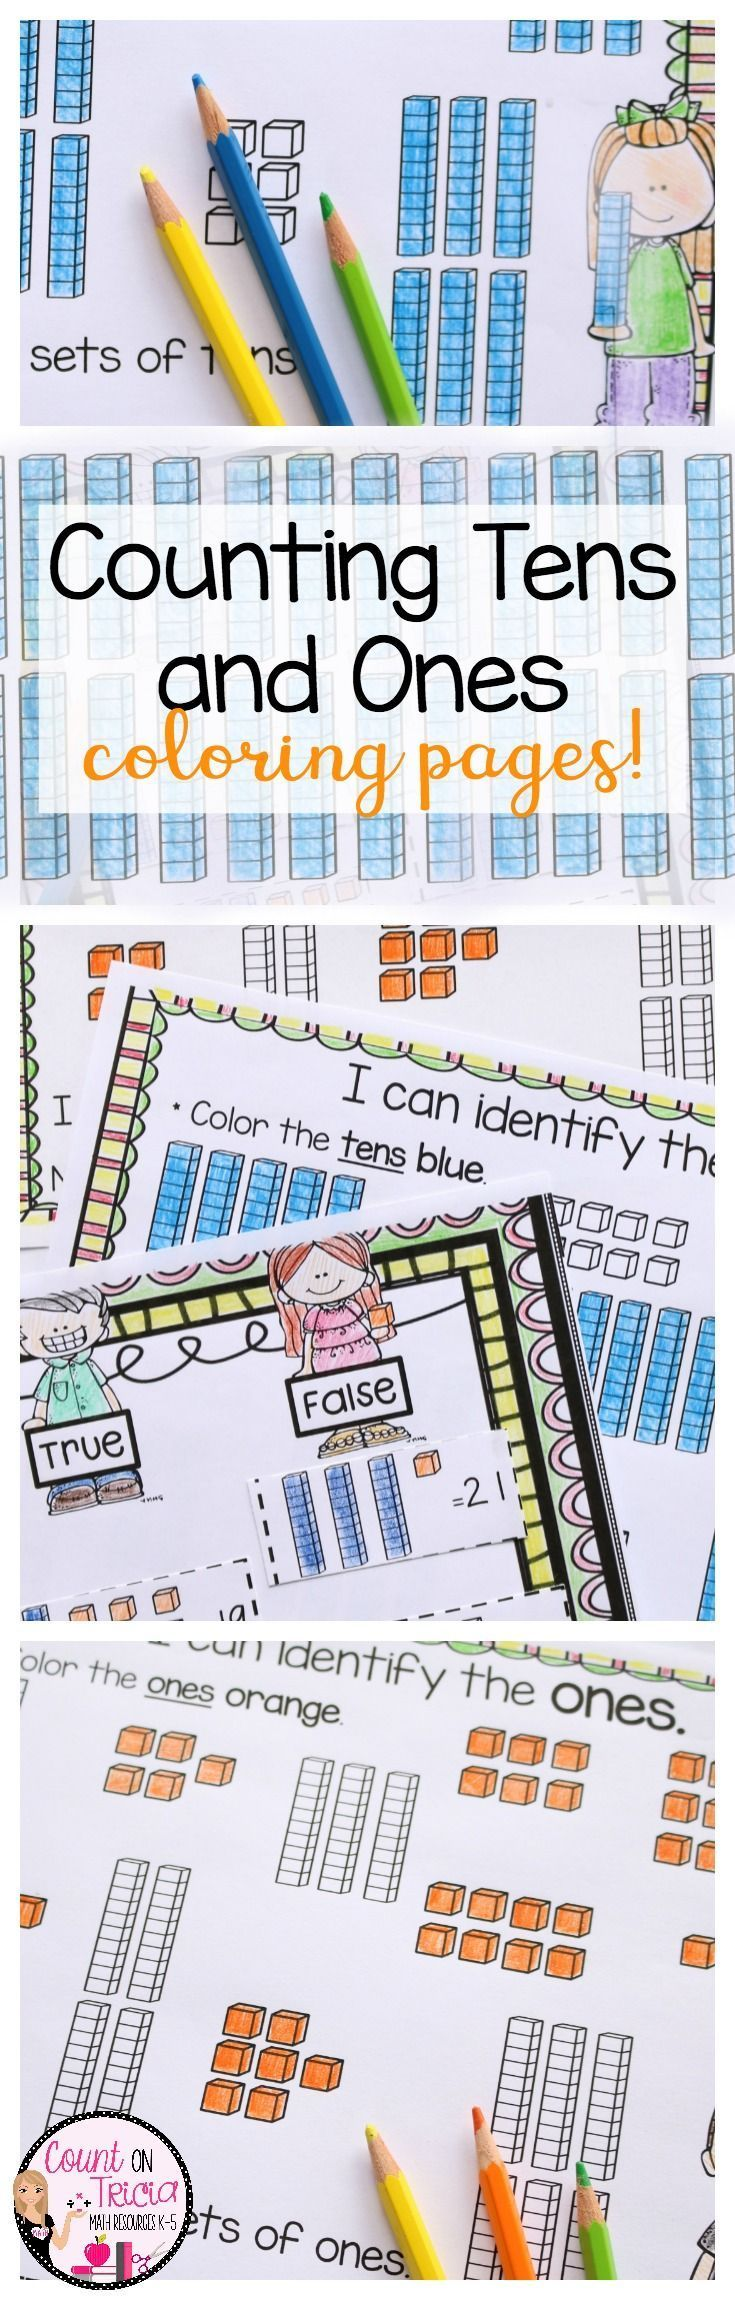 Increase Student Understanding Of Beginning Place Value Practice Place Value With Tens And Ones Tens And Ones Math Activities Elementary Homeschool Programs [ 2300 x 735 Pixel ]